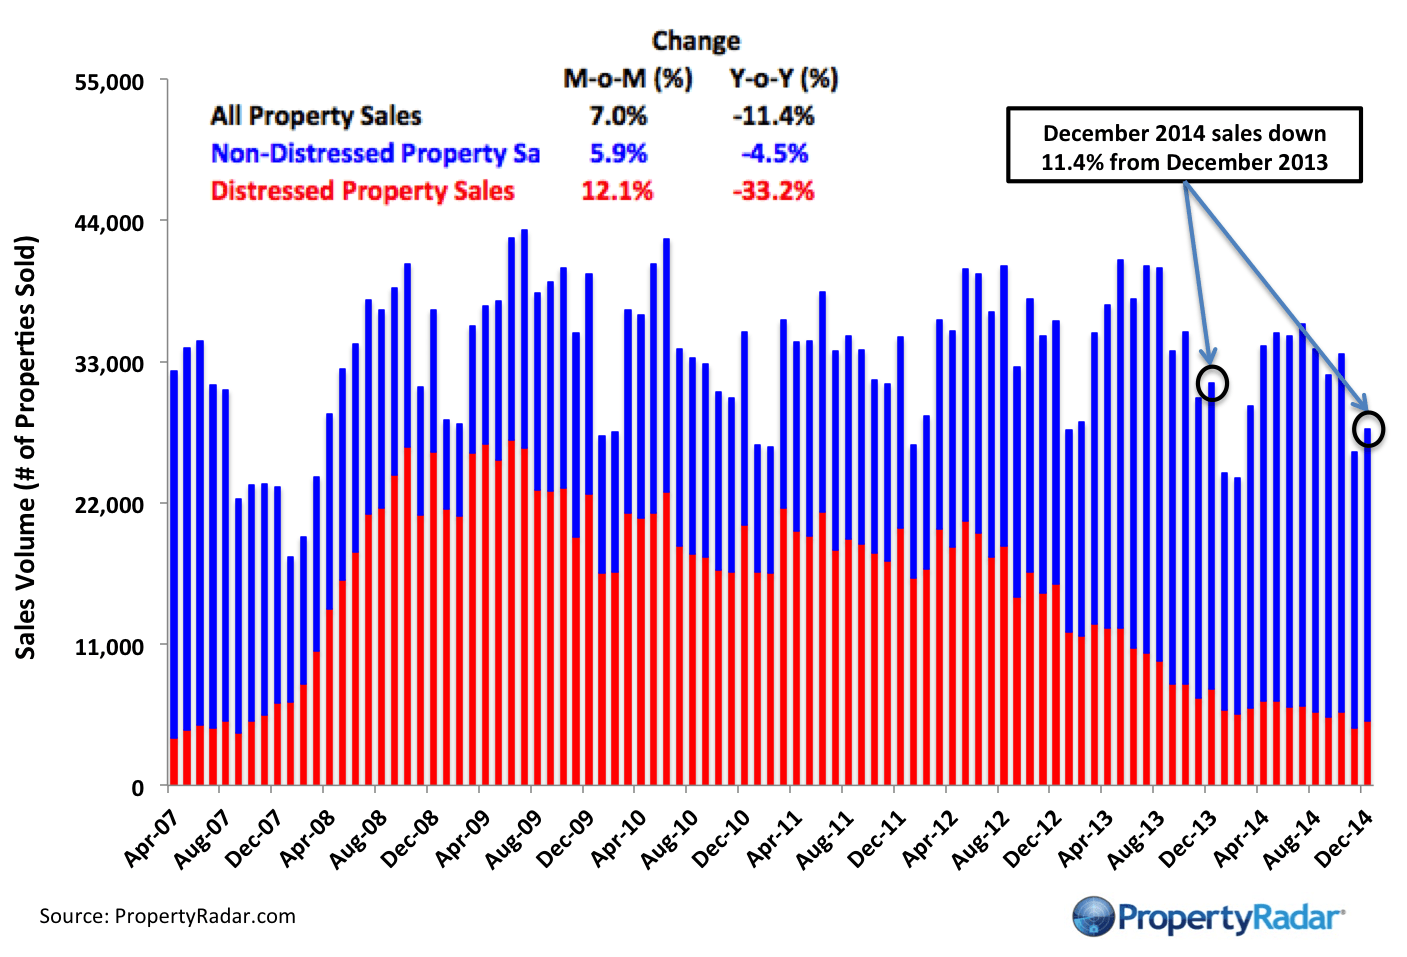 December Sales Up 7 Percent Month-over-MonthSales for All of 2014 Down 11.4 Percent Y-o-YMedian Prices Nearly Unchanged Since May 2014